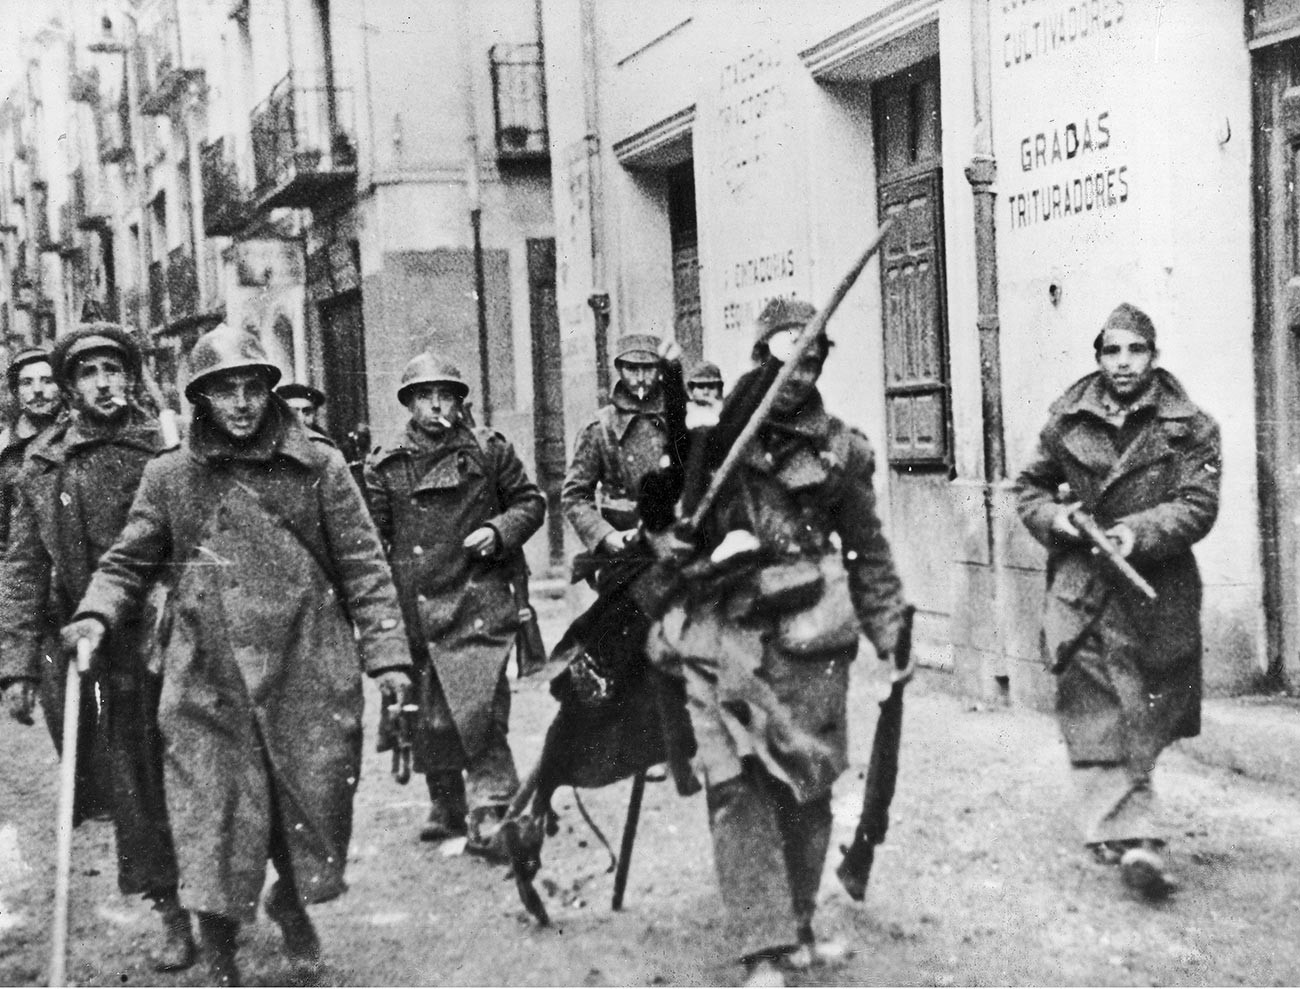 The Spanish republican soldiers during the Civil War in Spain